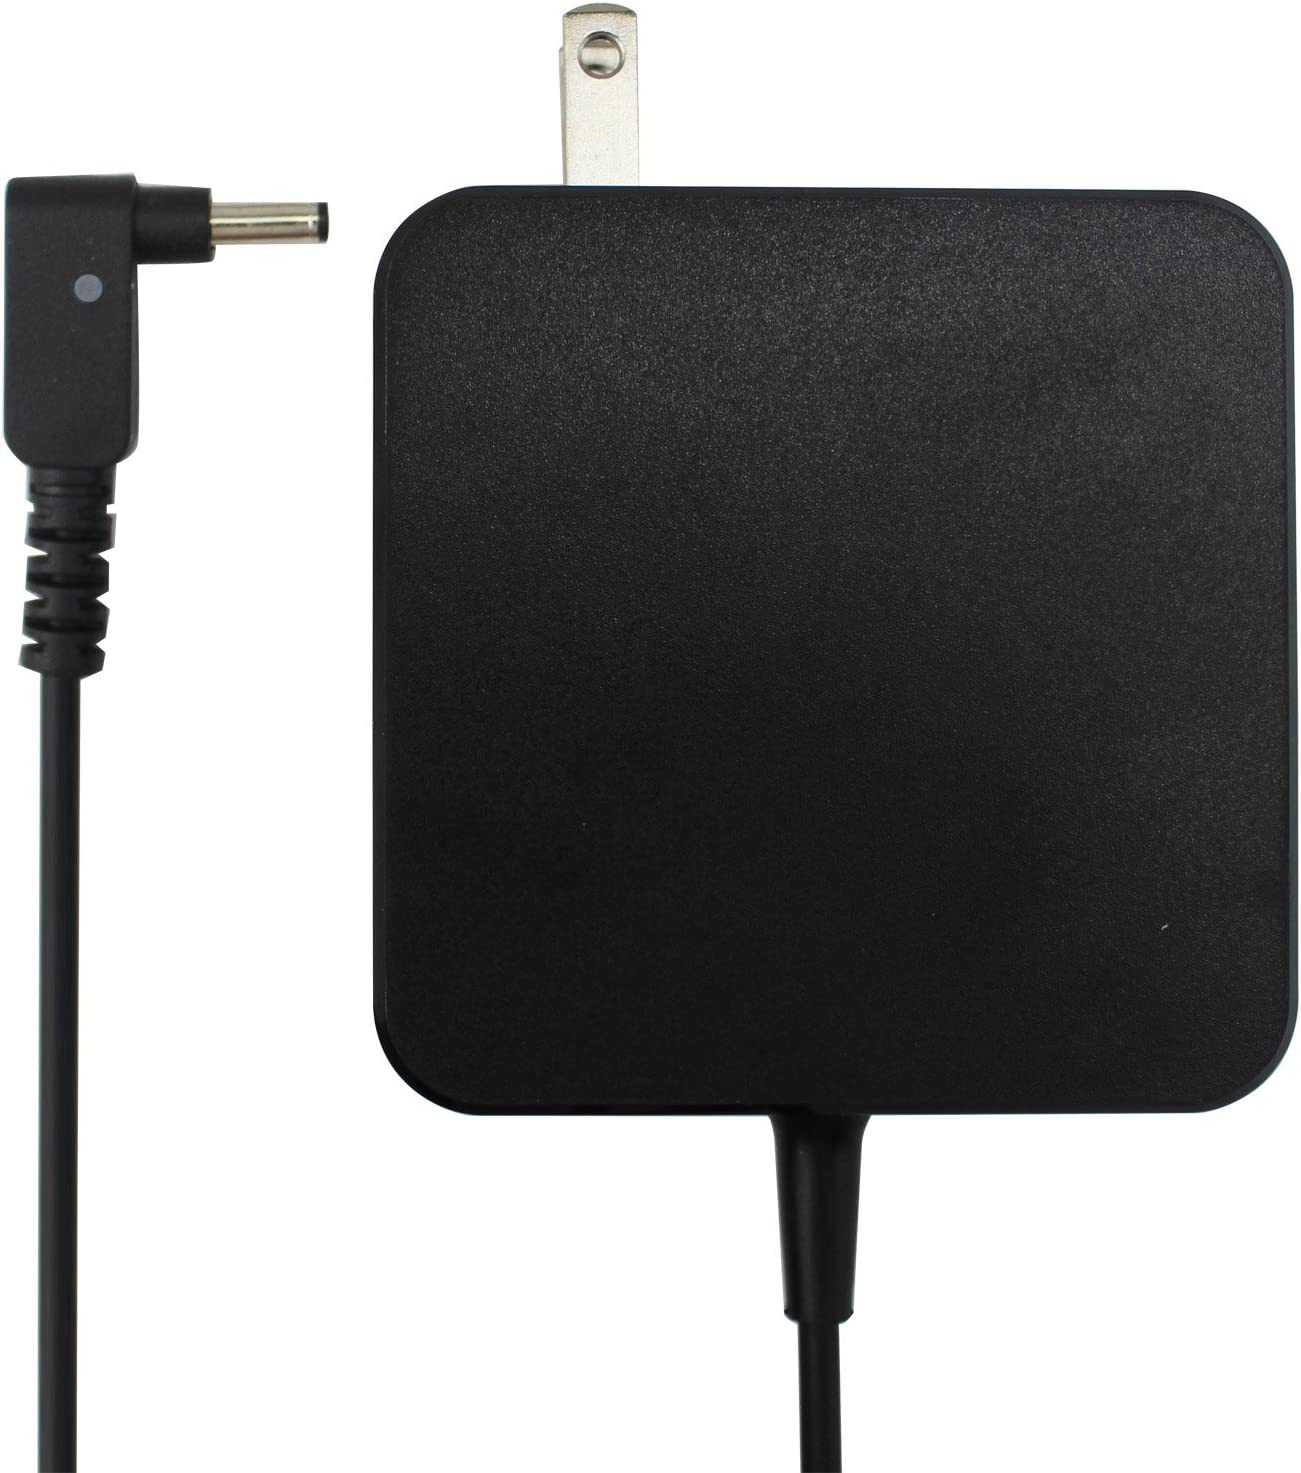 """ROCKETY Compatible asus C300 AC Power Adapter Replacement for Asus Charger Chromebook 13.3"""" C300S C300SA C300M C300MA VivoBook F510UA F510U F510 Laptop Notebook Cord Supply."""